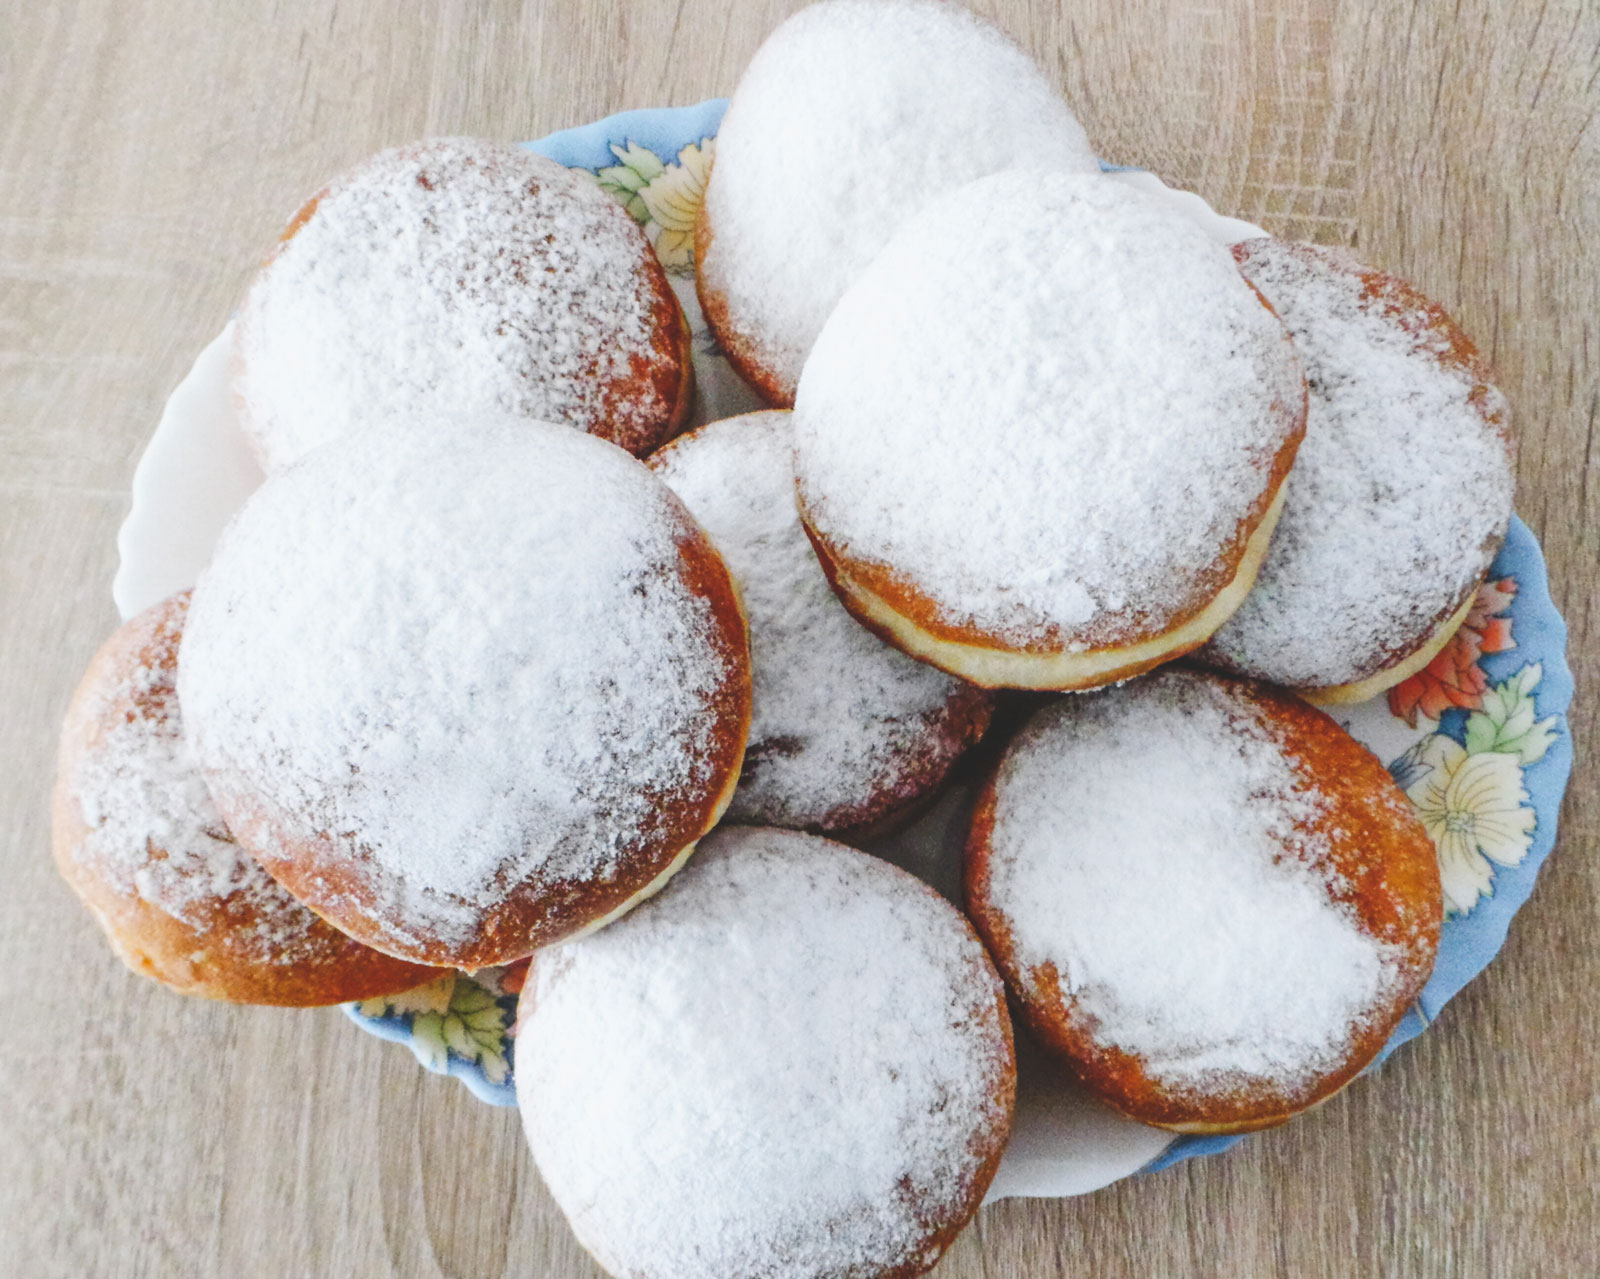 A large plate overwhelmed with delicious Paczki.